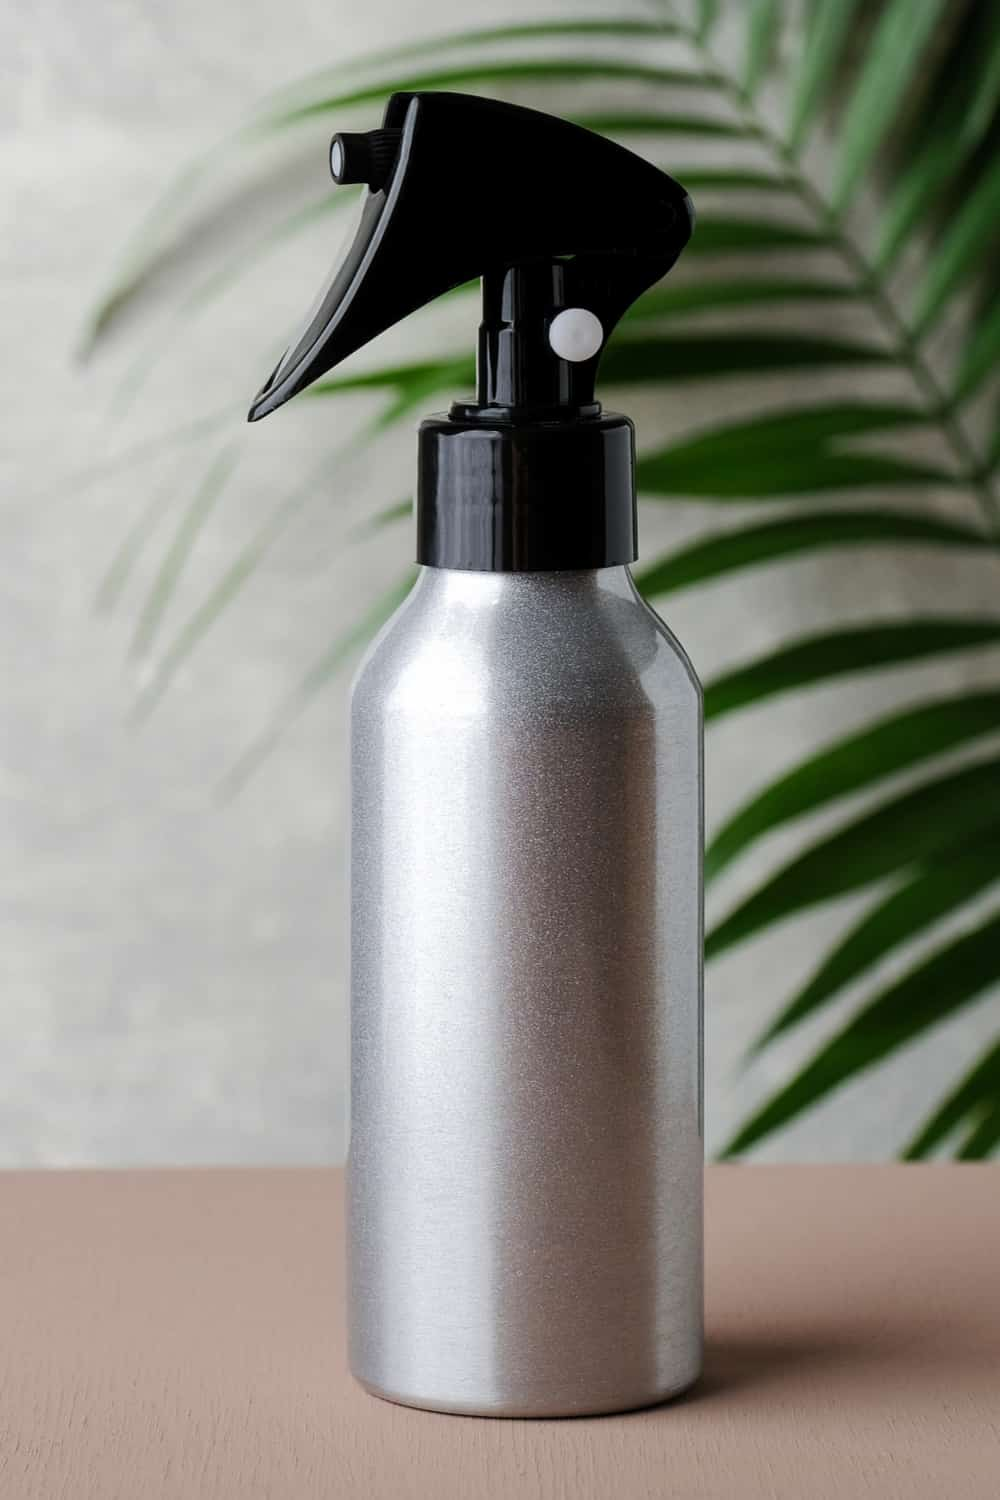 Liquid silver cleaner